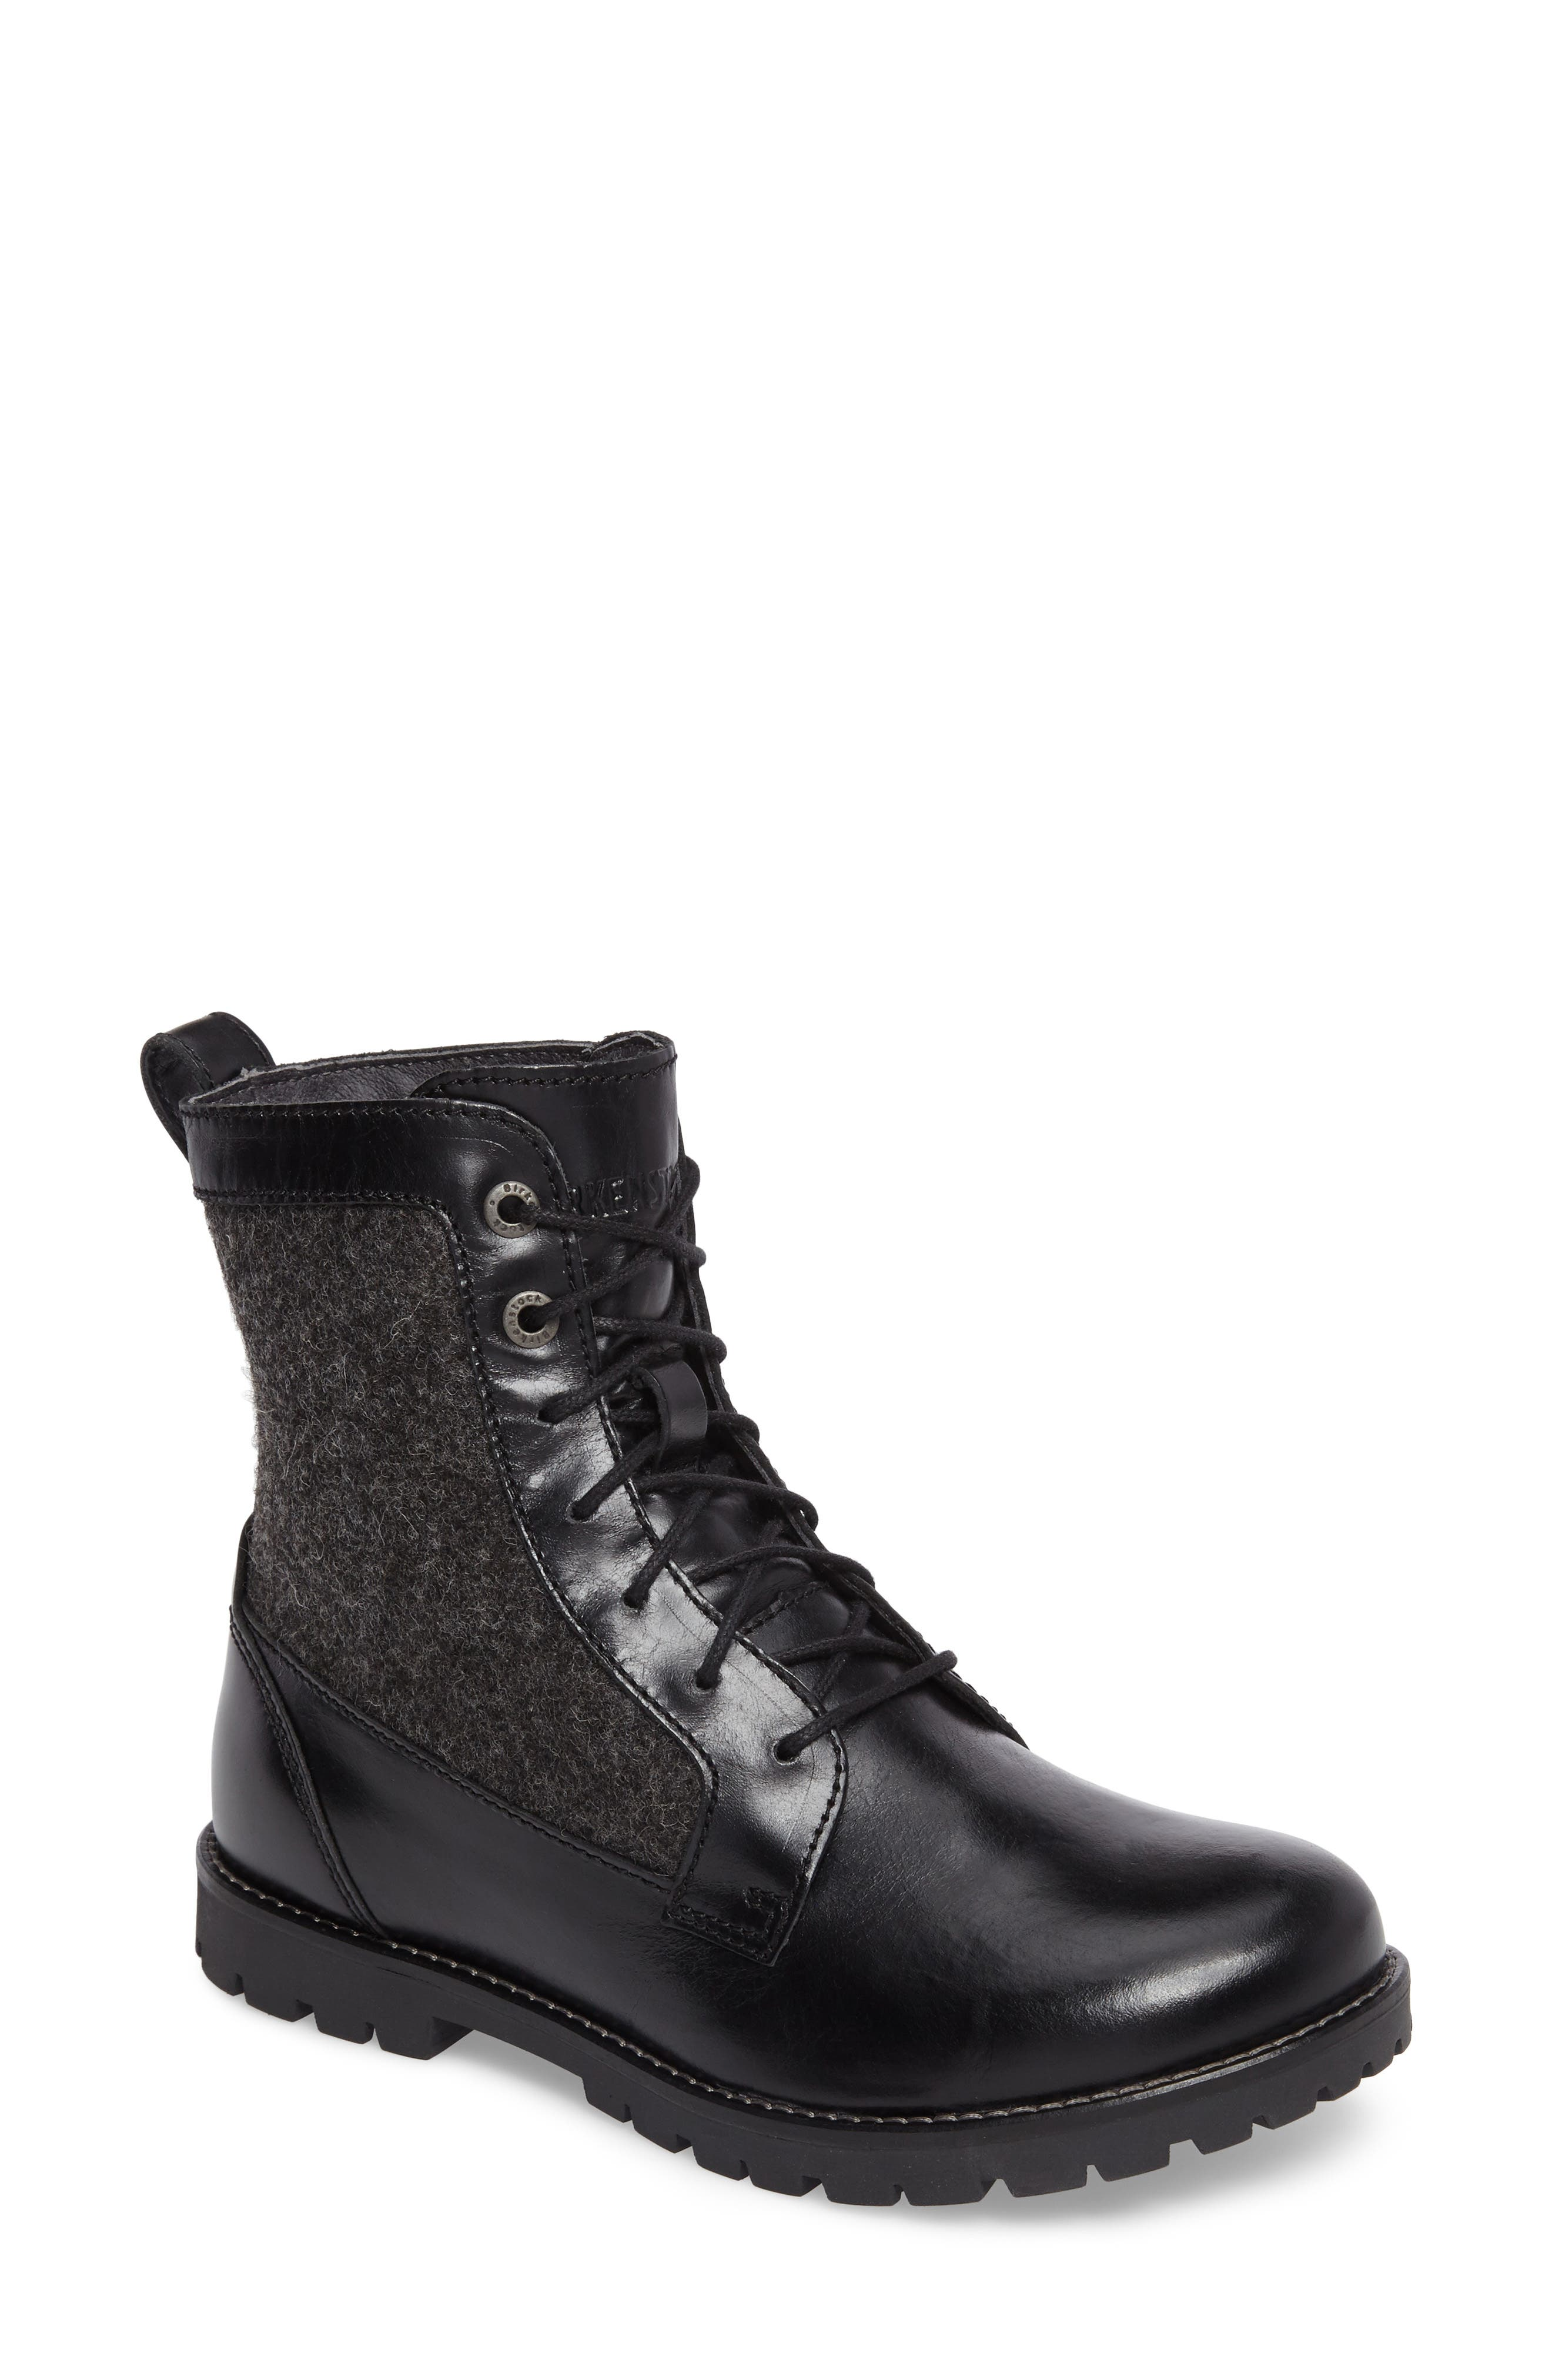 Alternate Image 1 Selected - Birkenstock Gilford Lace-Up Boot (Women)